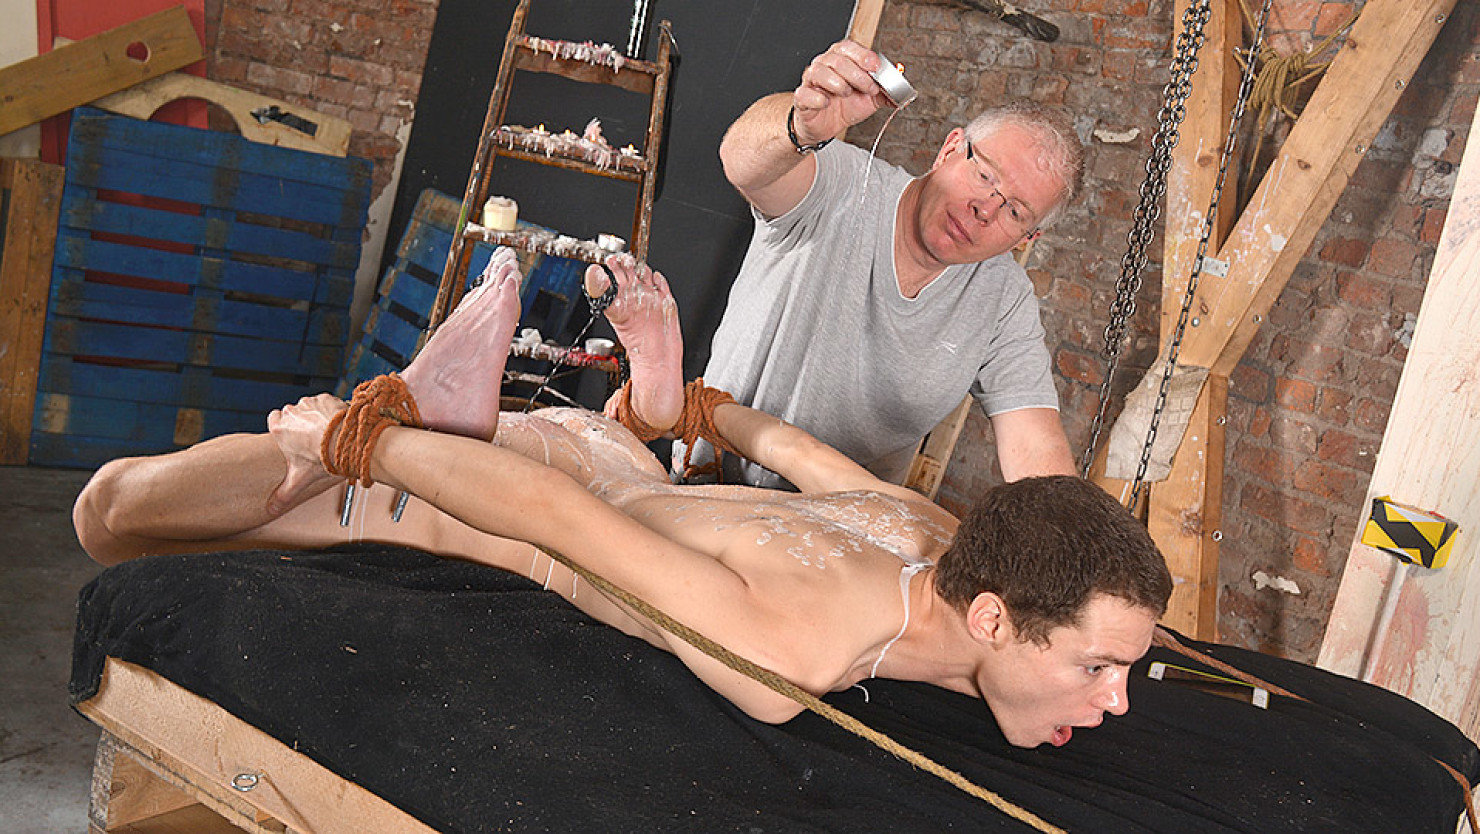 Jonny is in a very tricky position, roped down with his hard cock throbbing  and his arse on show, no wonder master Sebastian is making full use of him!